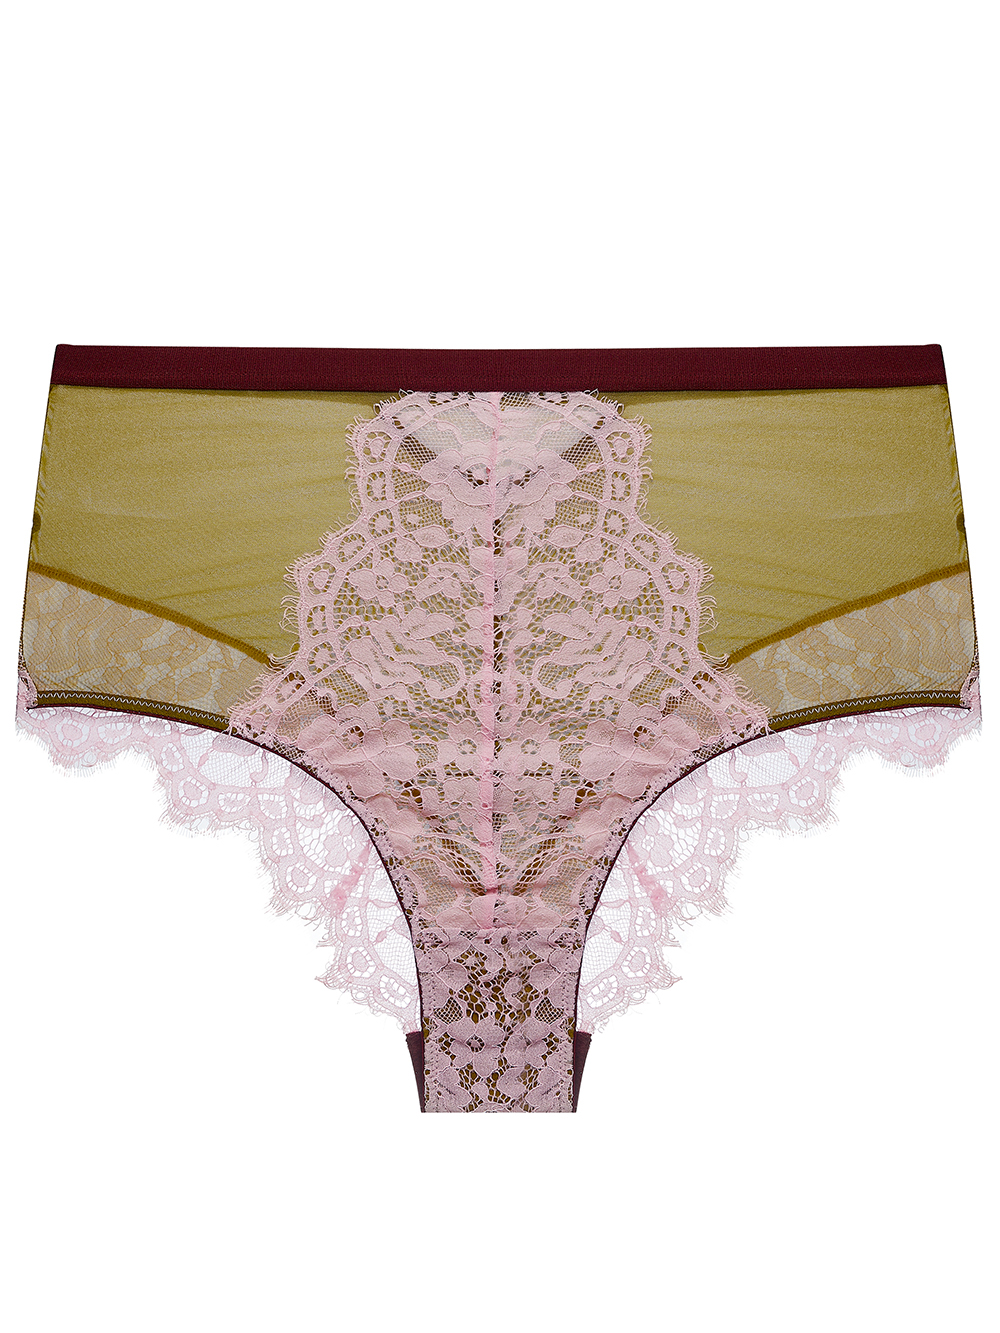 Estee High-Waist underwear by Dora Larsen